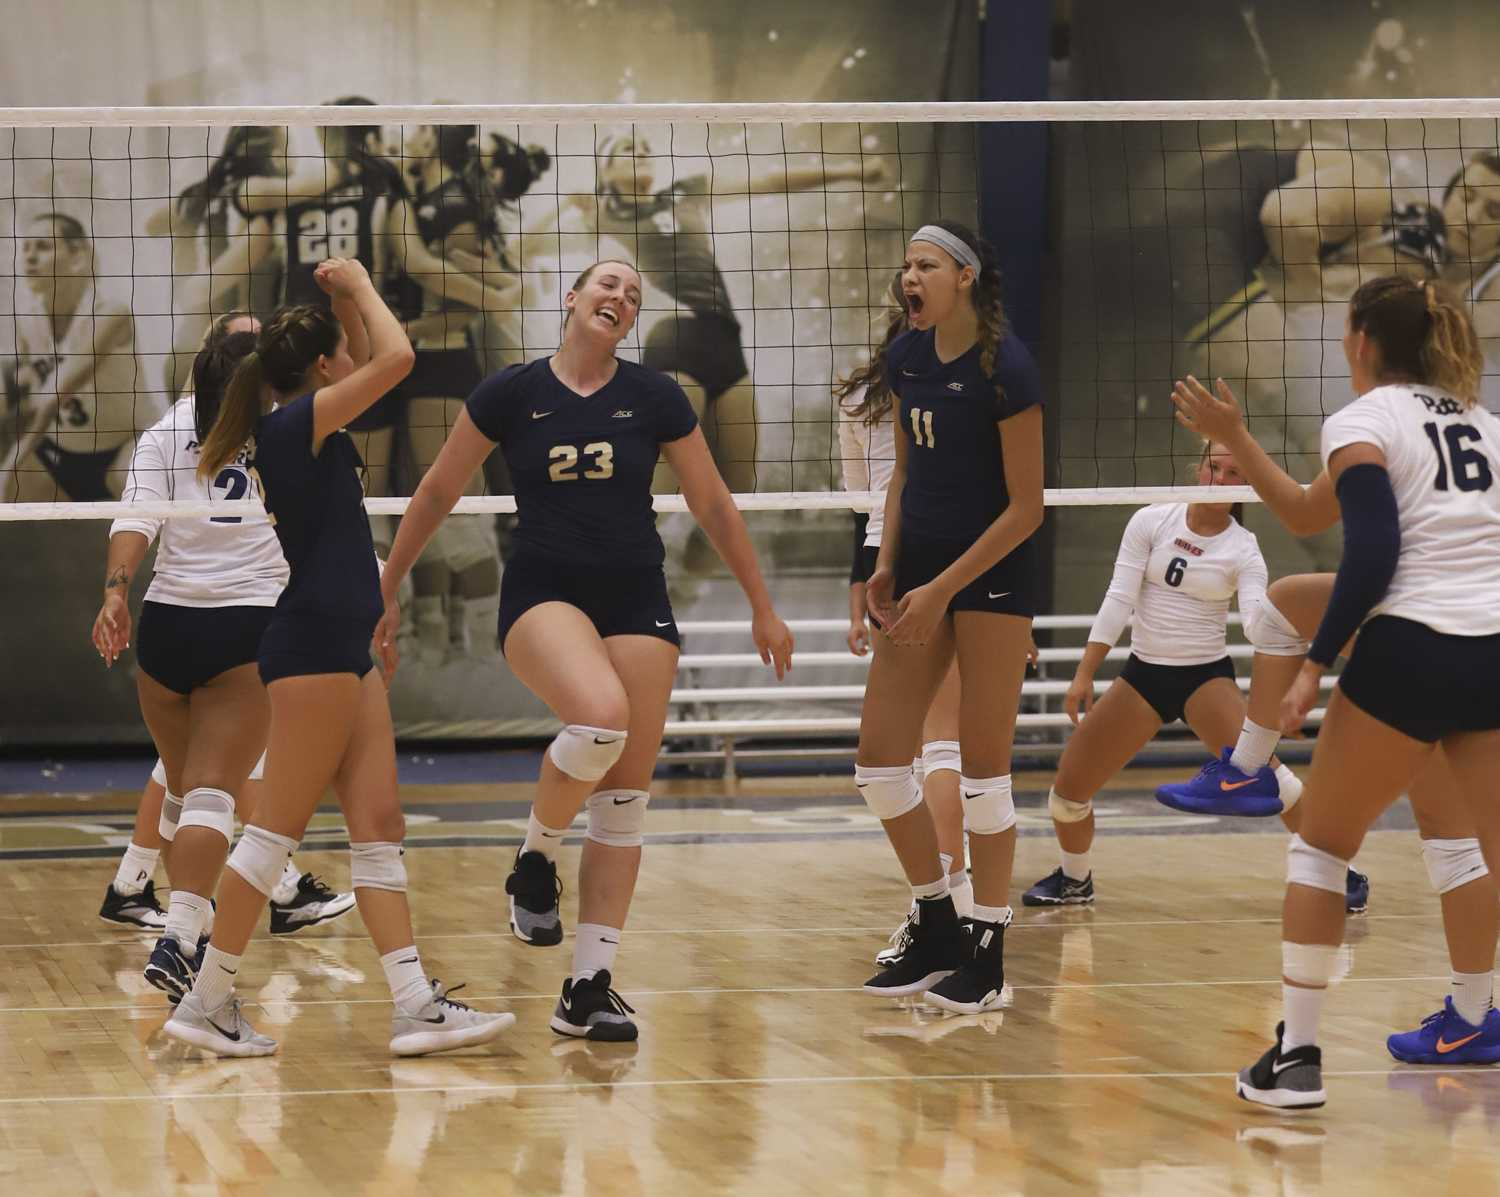 The Panthers defeated Pepperdine 3-0 on Saturday, Aug. 25. (Photo by Kaycee Orwig | Staff Photographer)